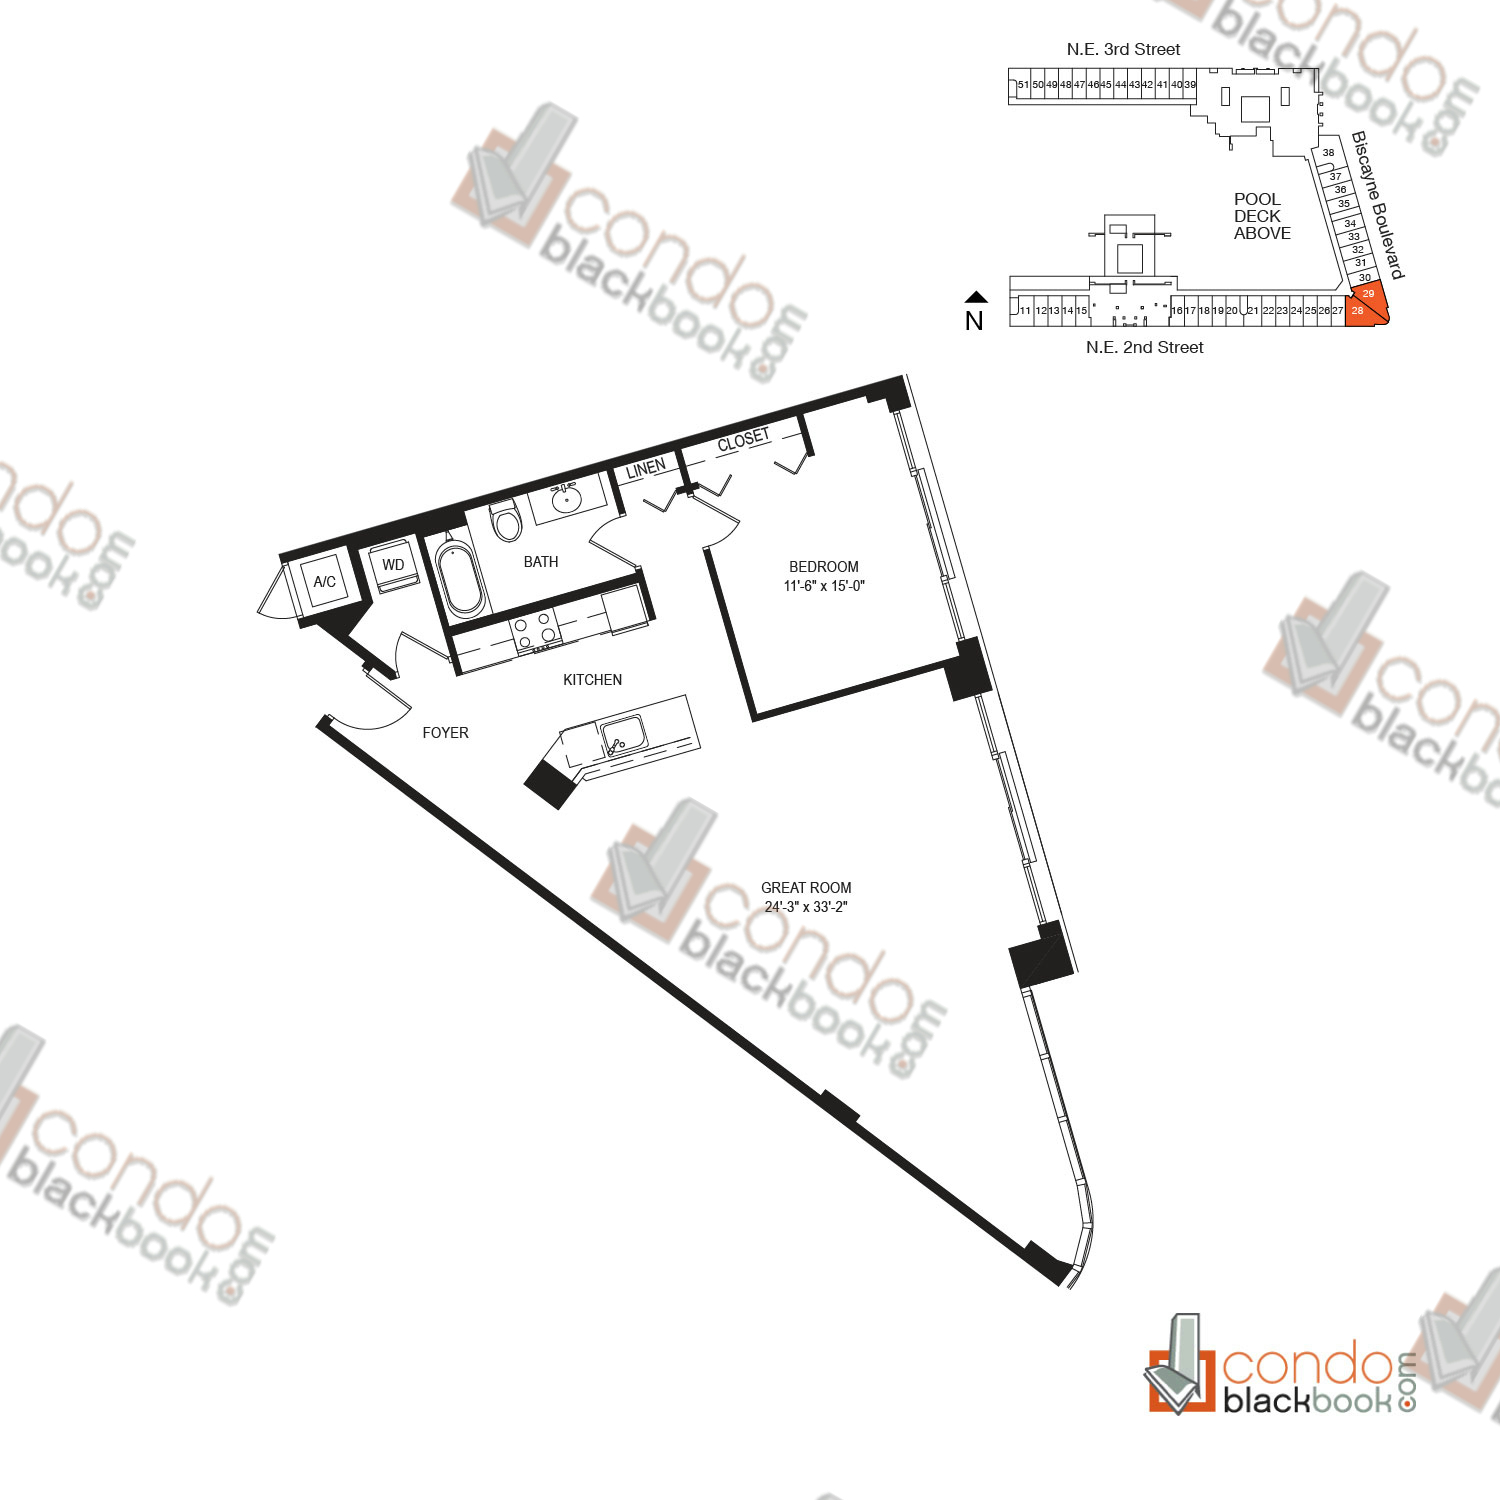 Floor plan for Vizcayne Downtown Miami Miami, model FLAT 4, line 28, 29, 1/1 bedrooms, 1095 sq ft